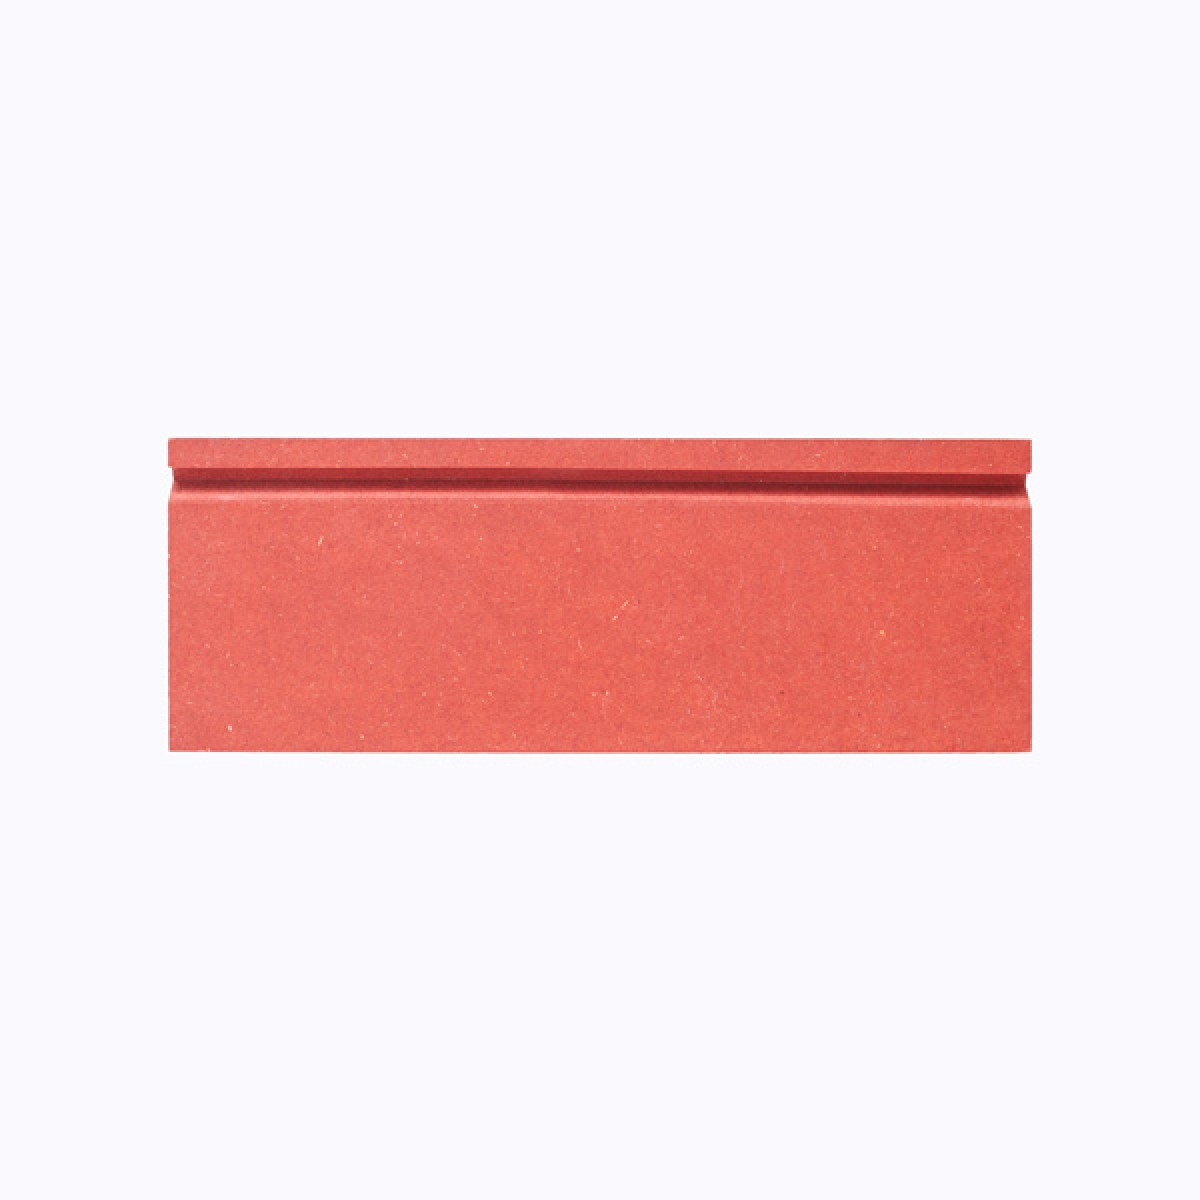 VINDUE BRICK IPAD HOLDER - RED